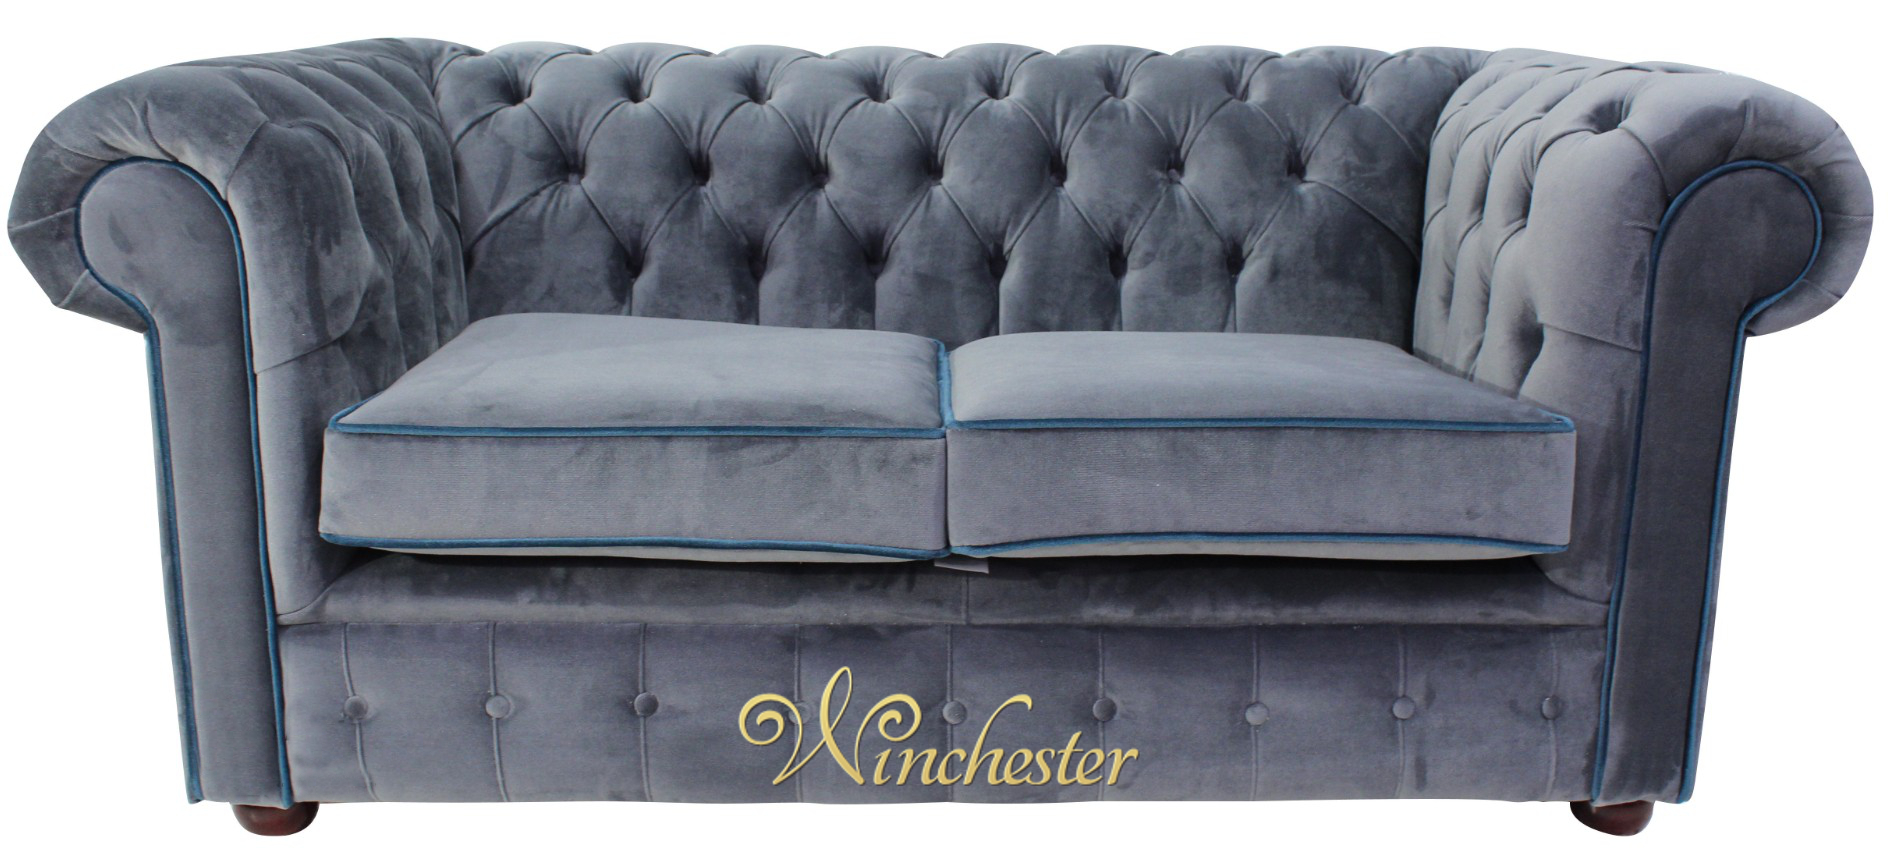 Chesterfield 2 seater settee malta grey blue piping velvet for Blue gray sofa